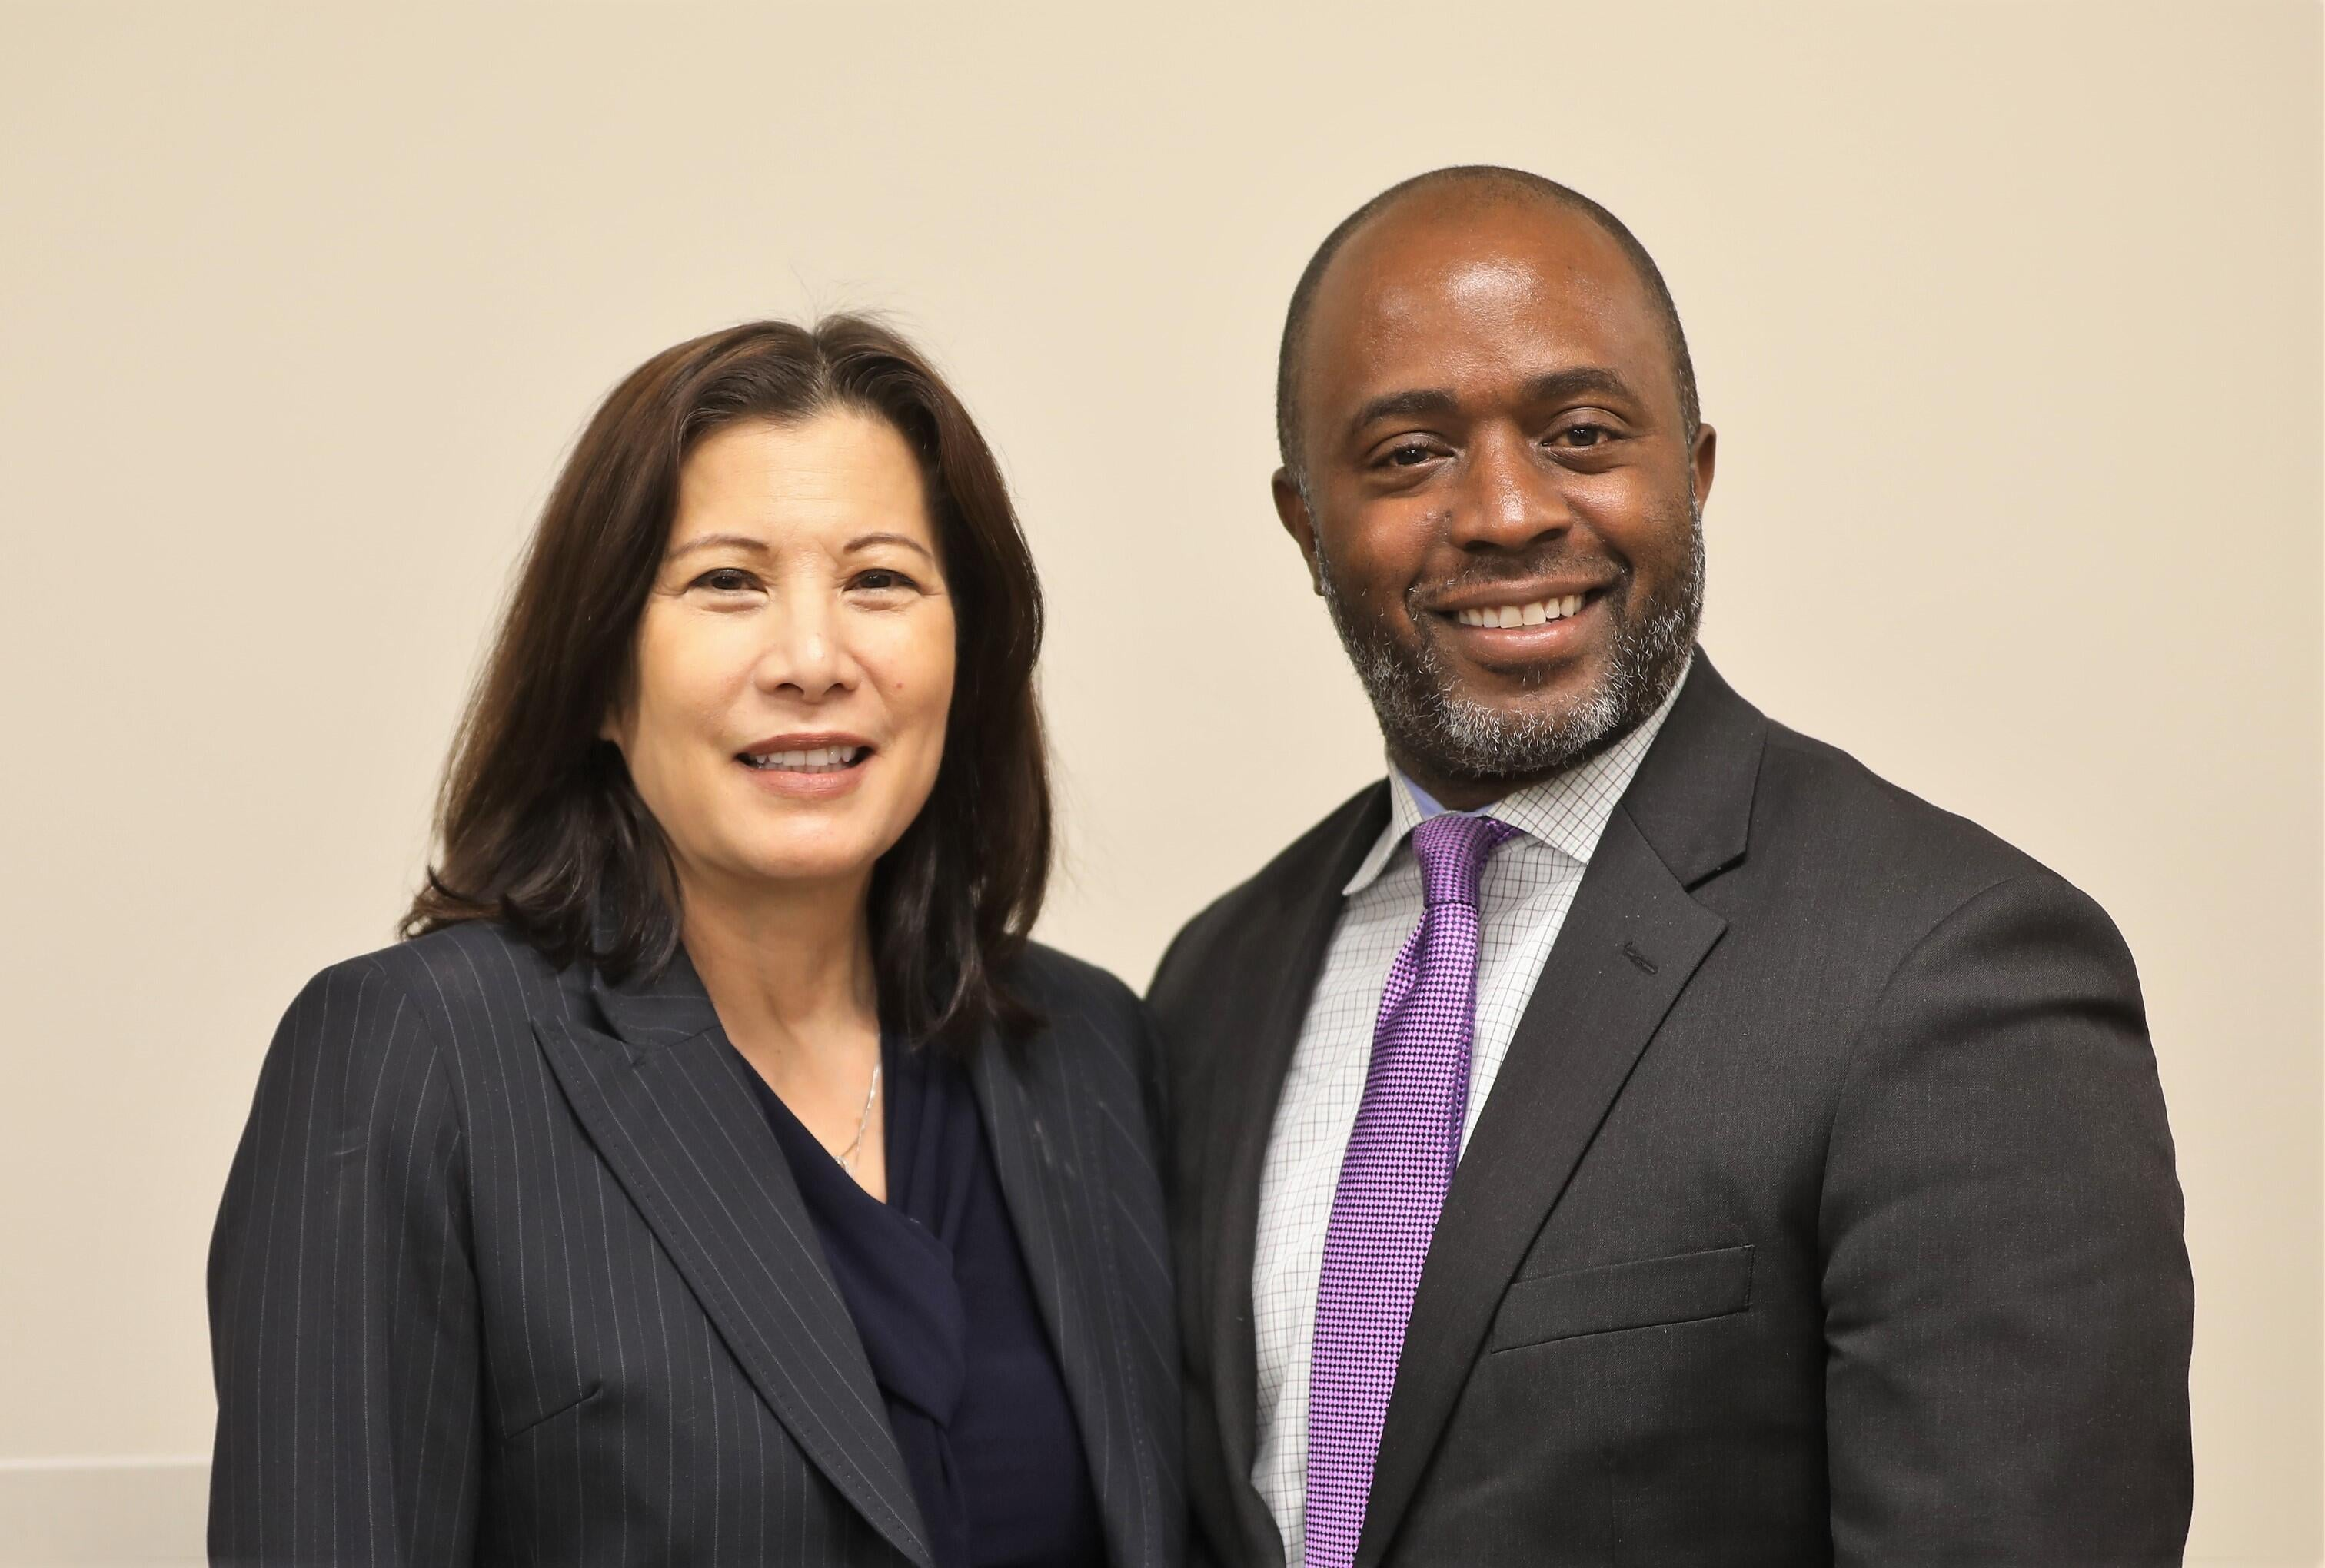 Chief Justice Tani Cantil-Sakauye and State Superintendent of Public Instruction Tony Thurmond